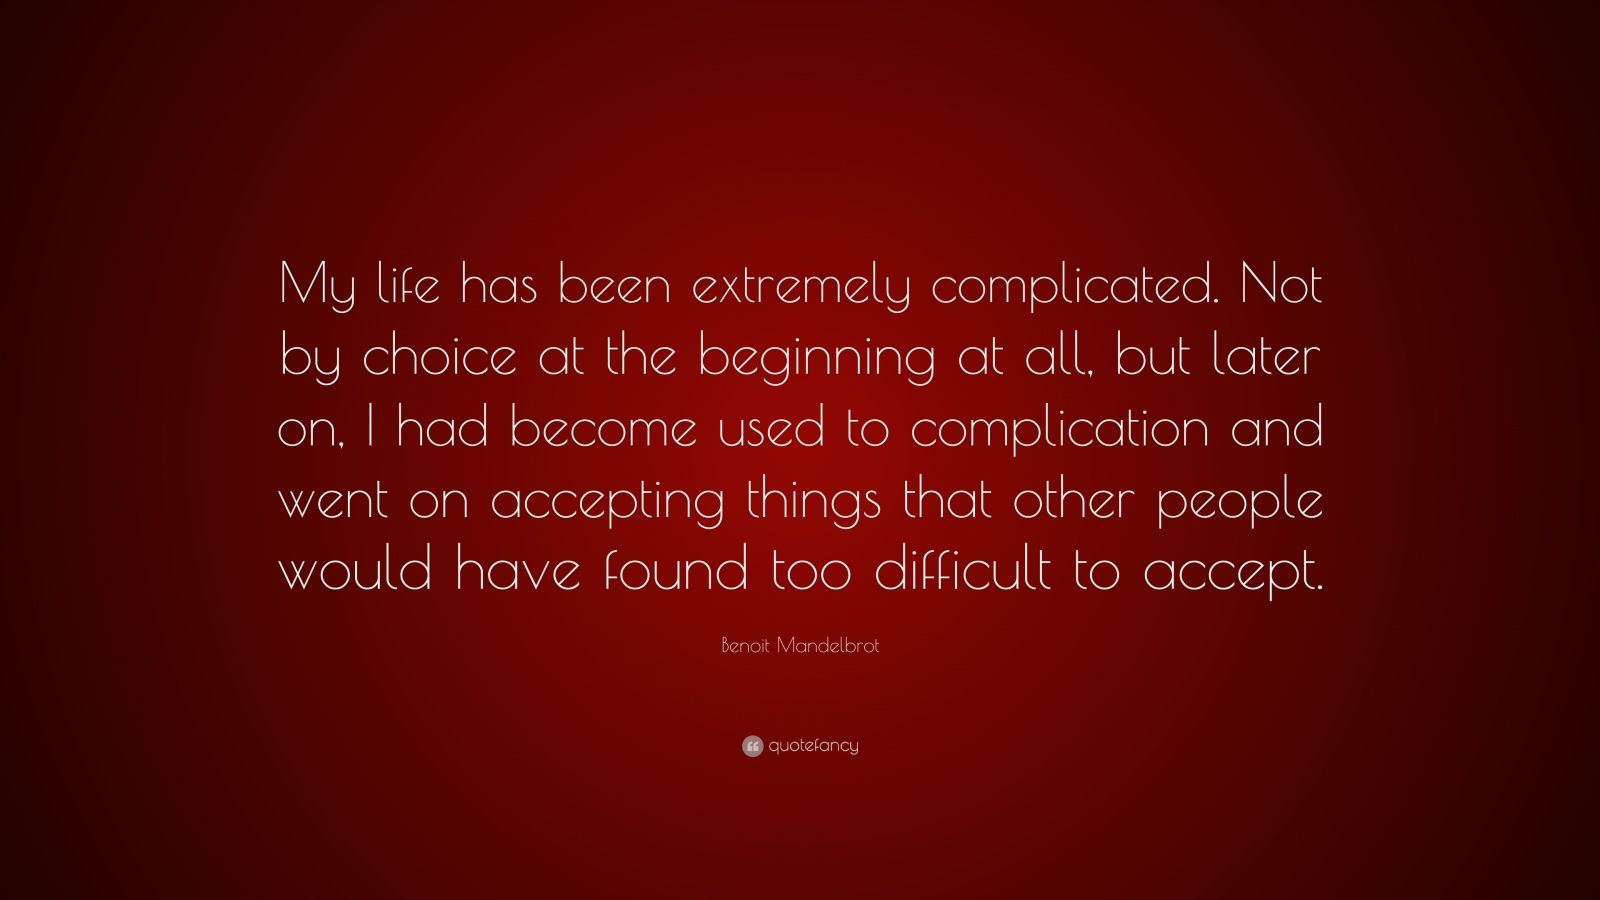 """Benoit Mandelbrot Quote: """"My life has been extremely complicated. Not by choice at the beginning at all, but later on, I had become used to complication and went on accepting things that other people would have found too difficult to accept."""""""